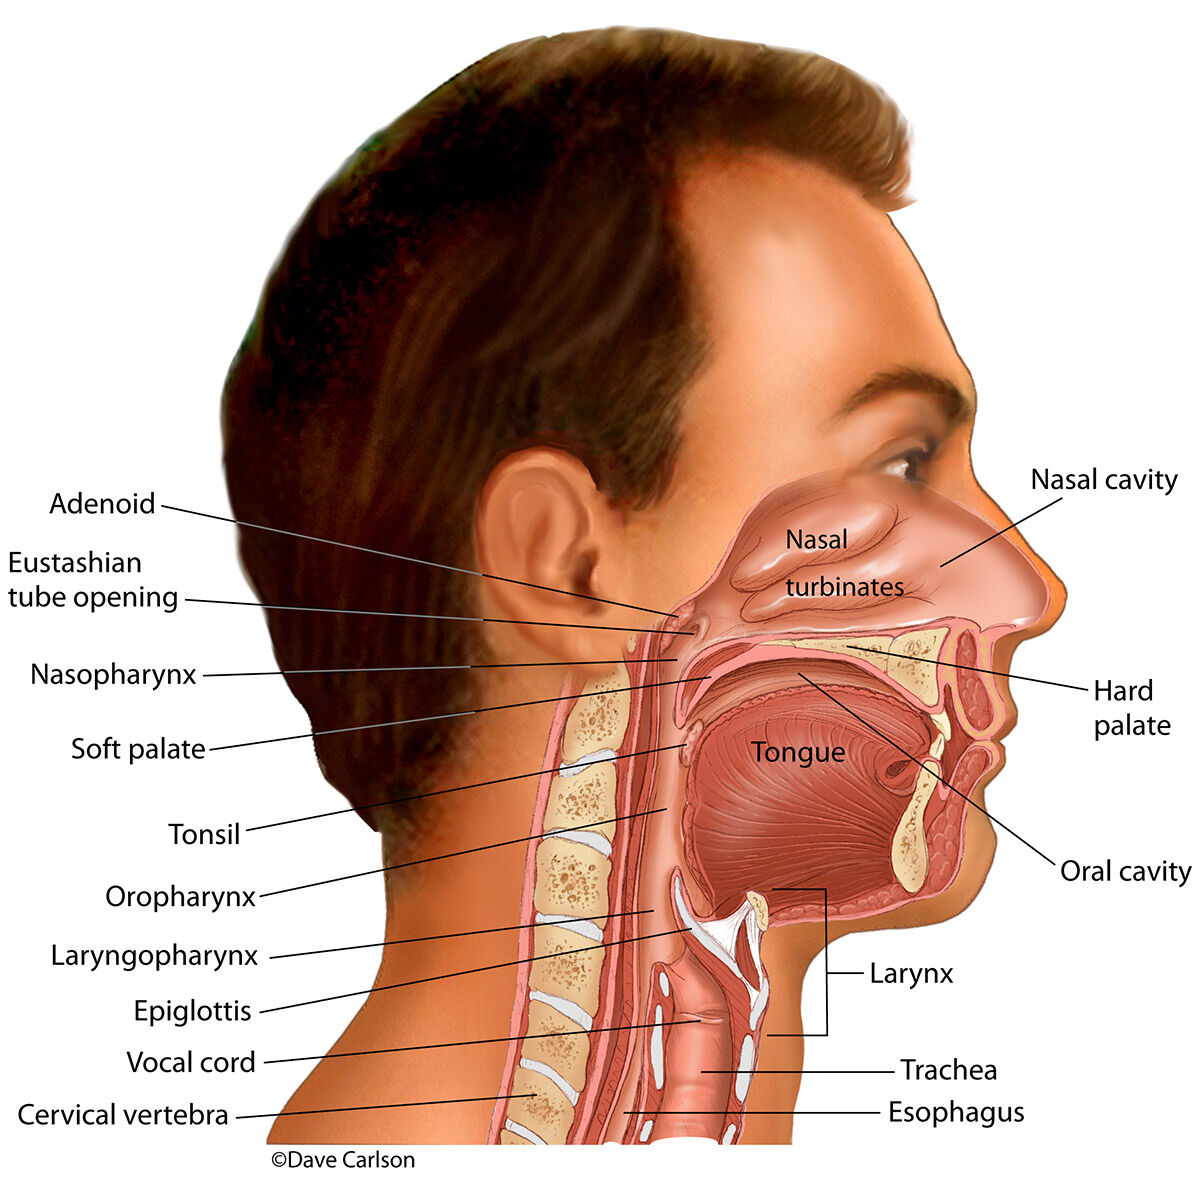 Illustration of the nasal, oral and related cavities and structures in the head and neck.